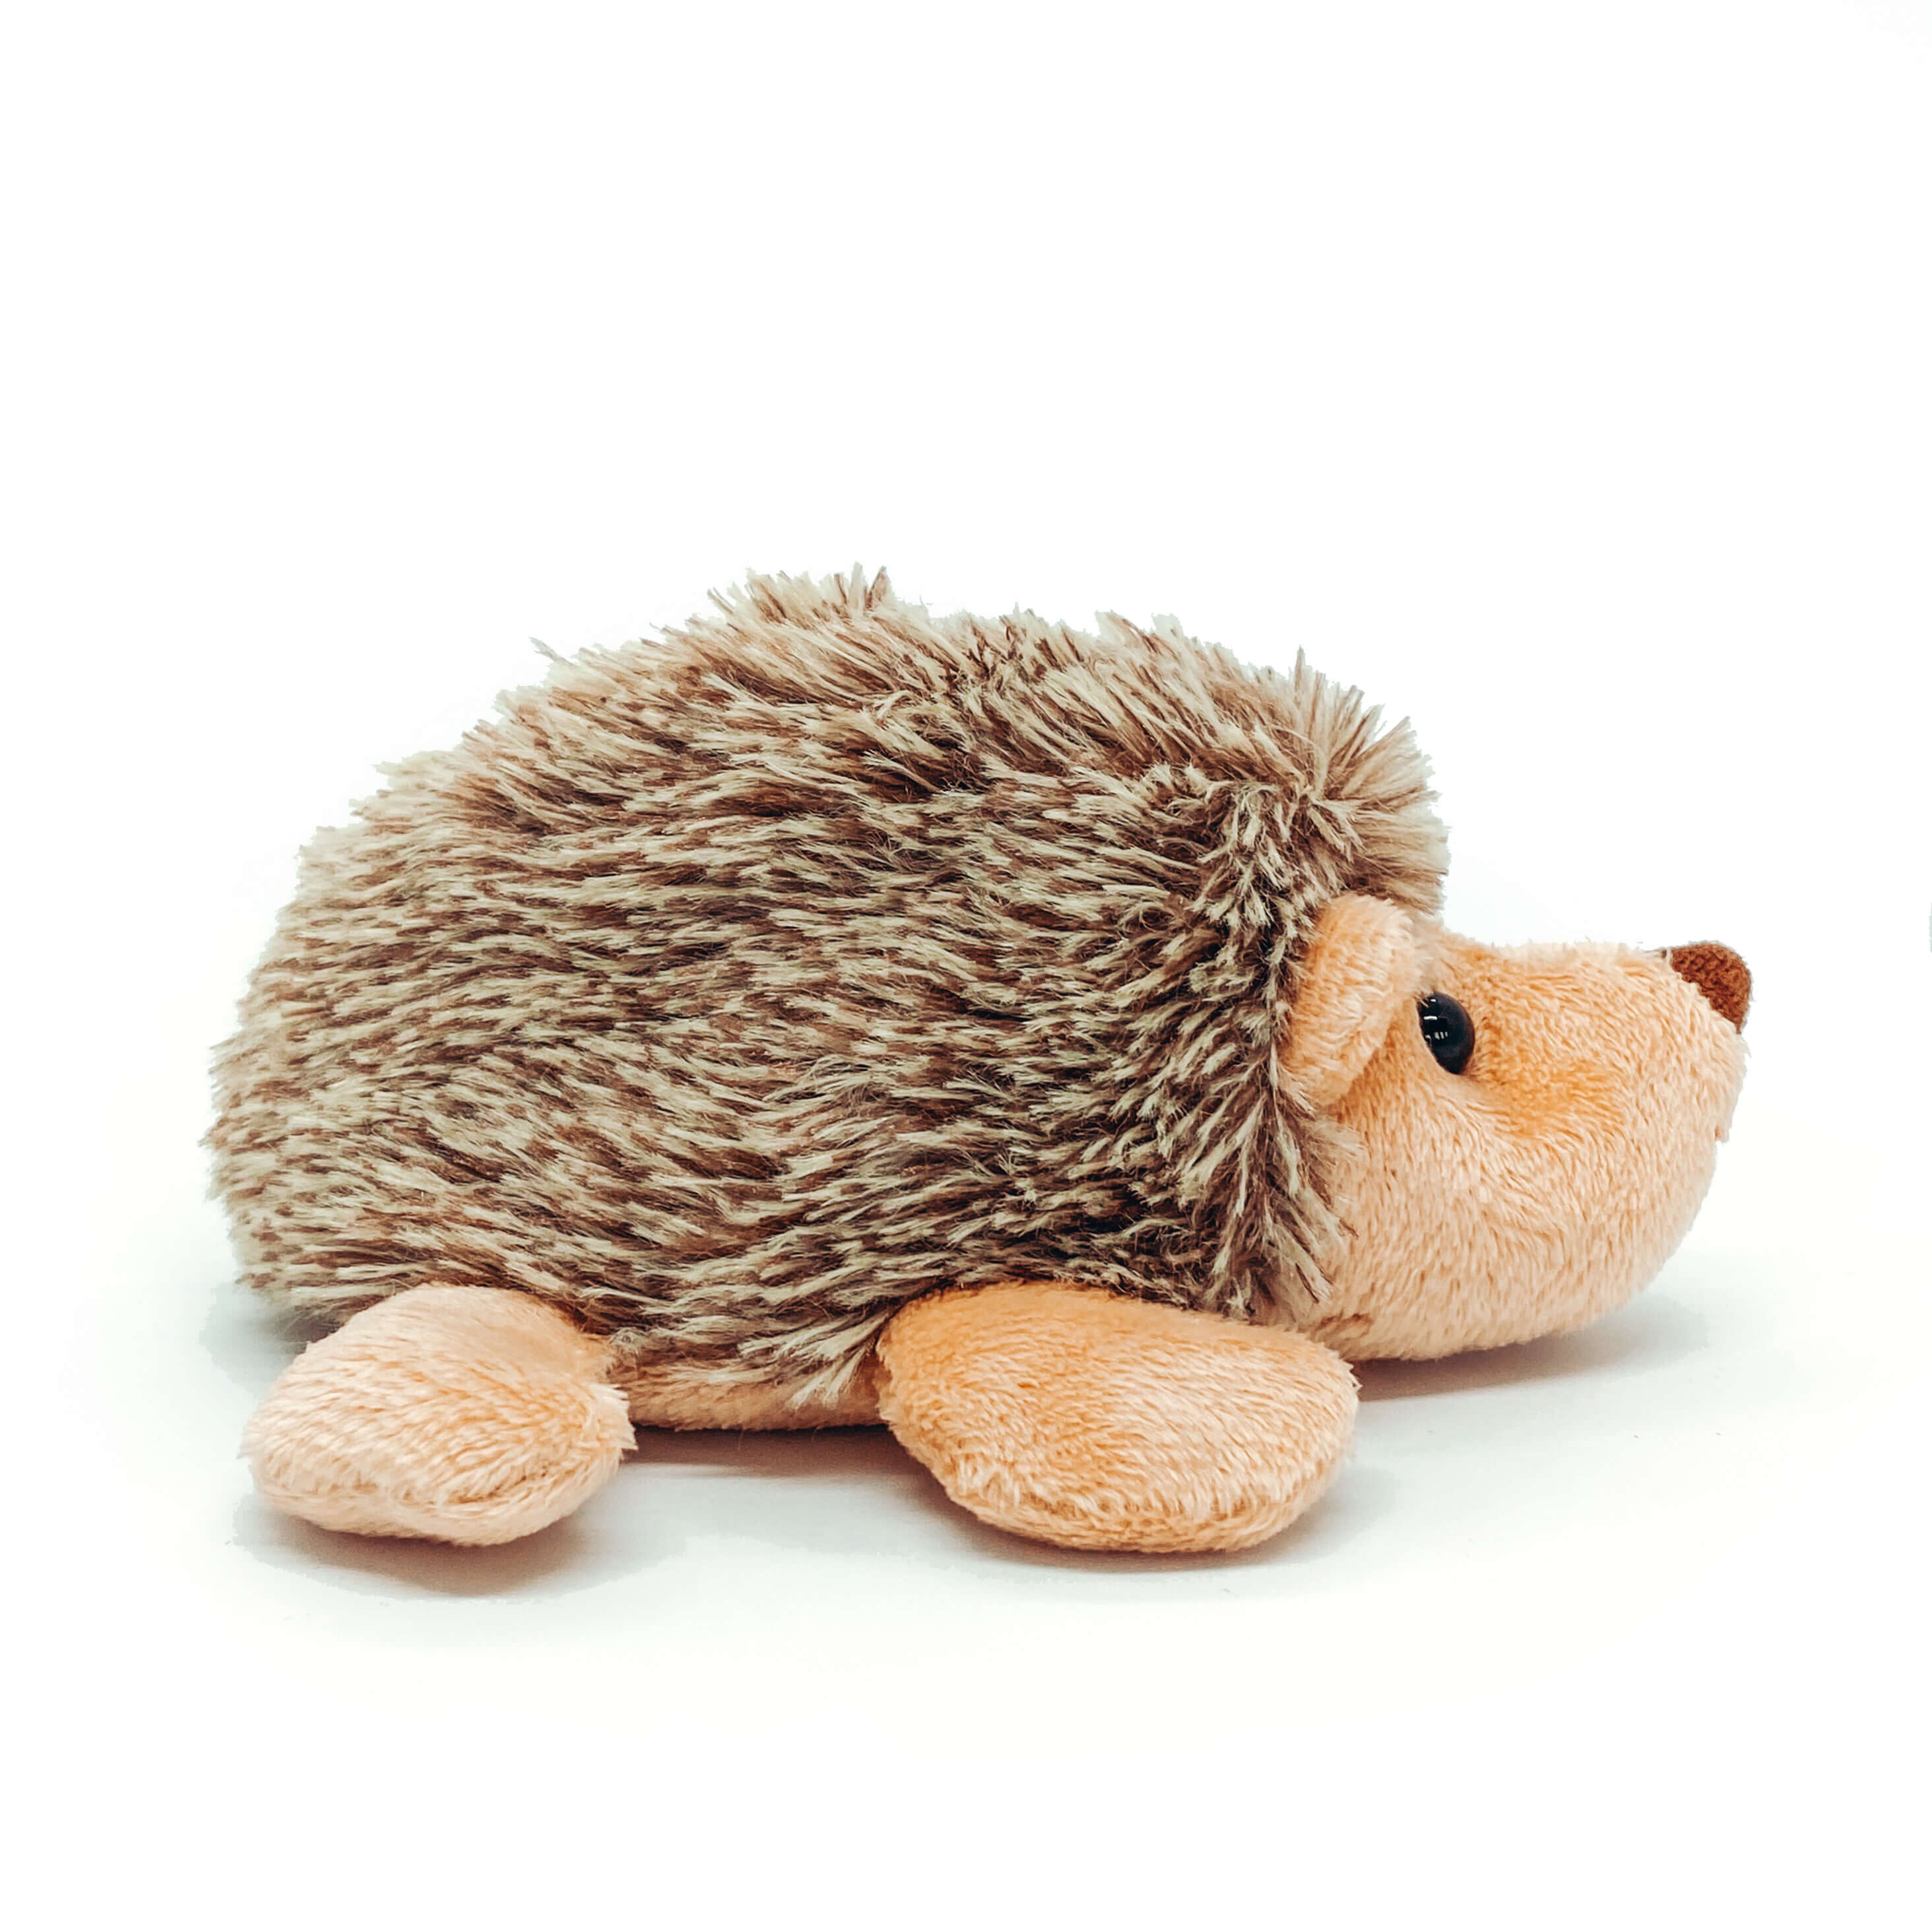 Big Hedgehog Plushee (Walking on tiny feet Position)